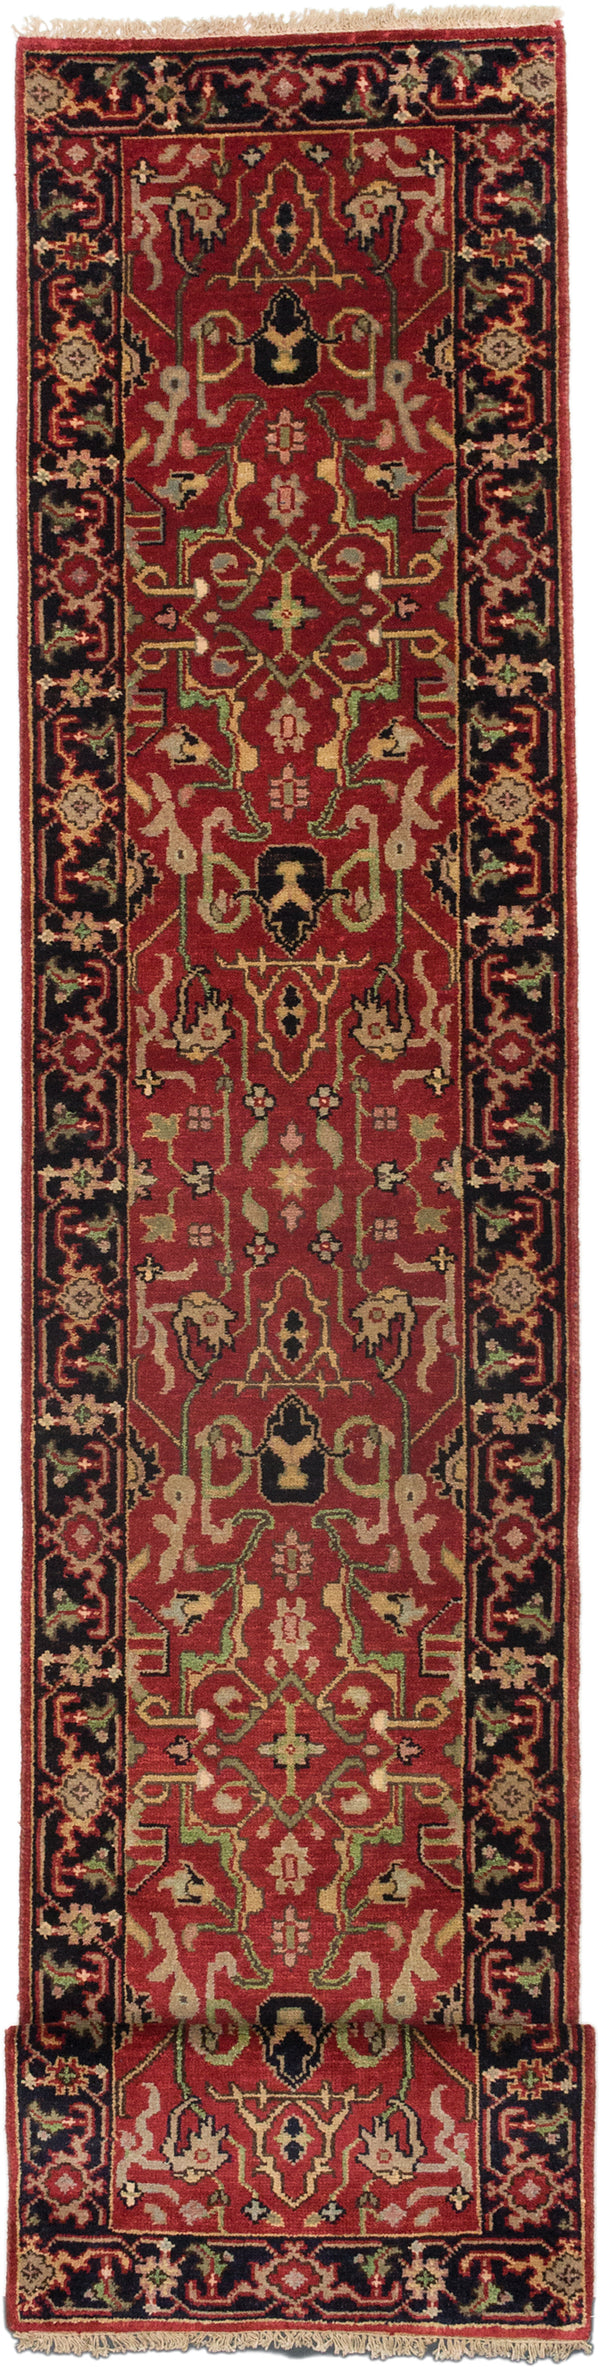 Hand-knotted Indian Floral  Traditional Serapi-Heritage Runner rug  Black, Dark Copper 2.5 x 20